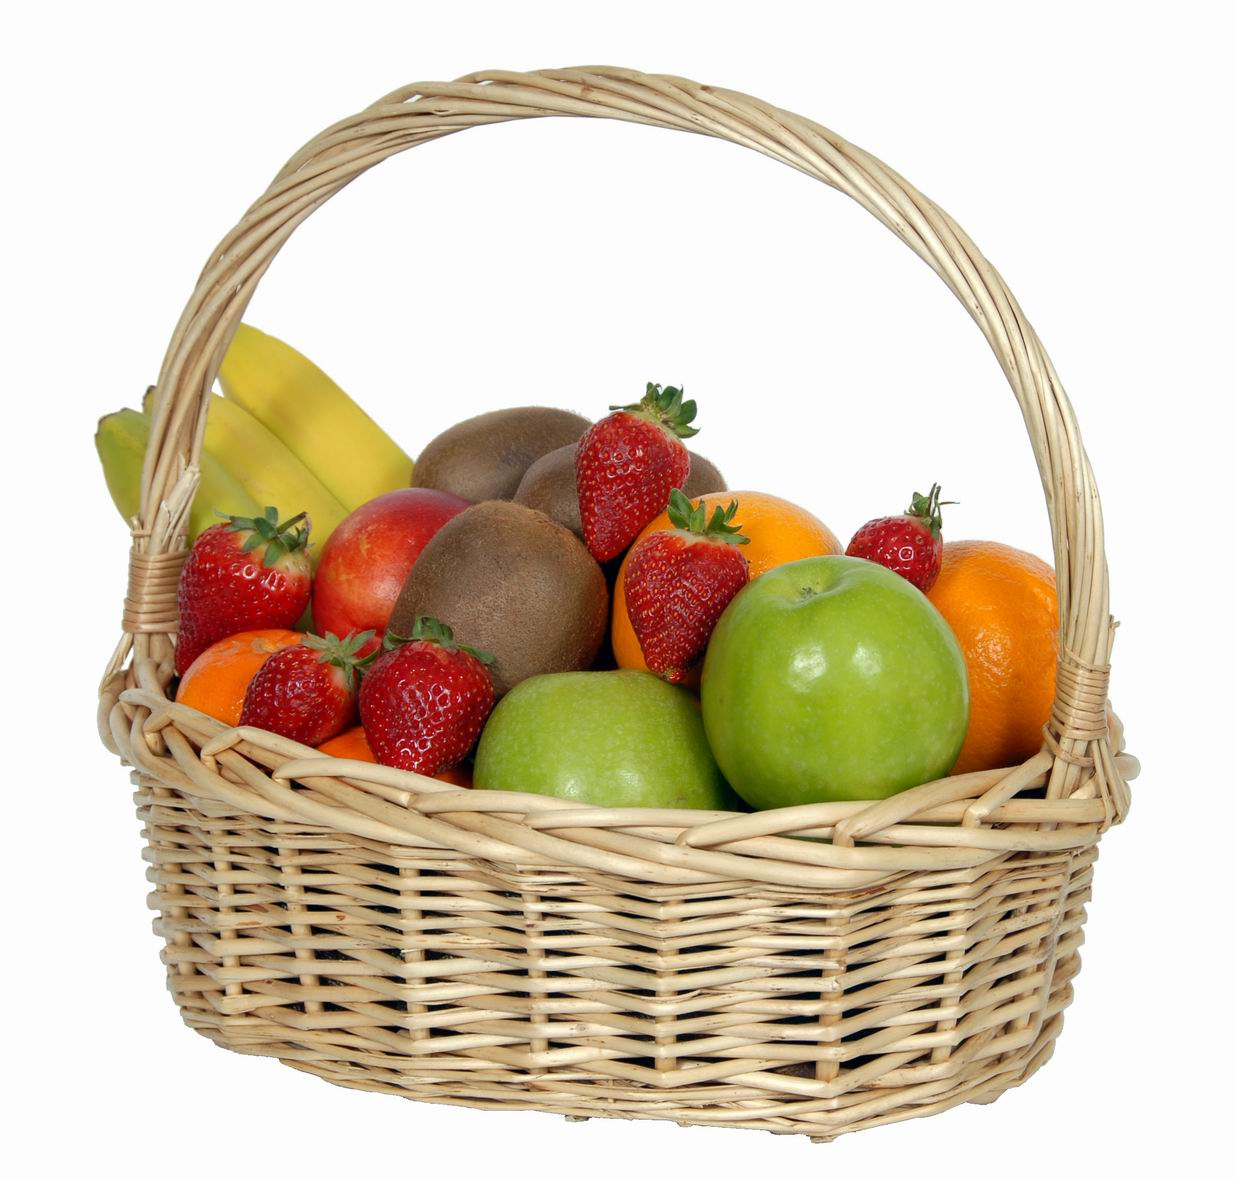 Designer Fruit Basket A Basket Of Fruit Wallpapers High Quality Download Free